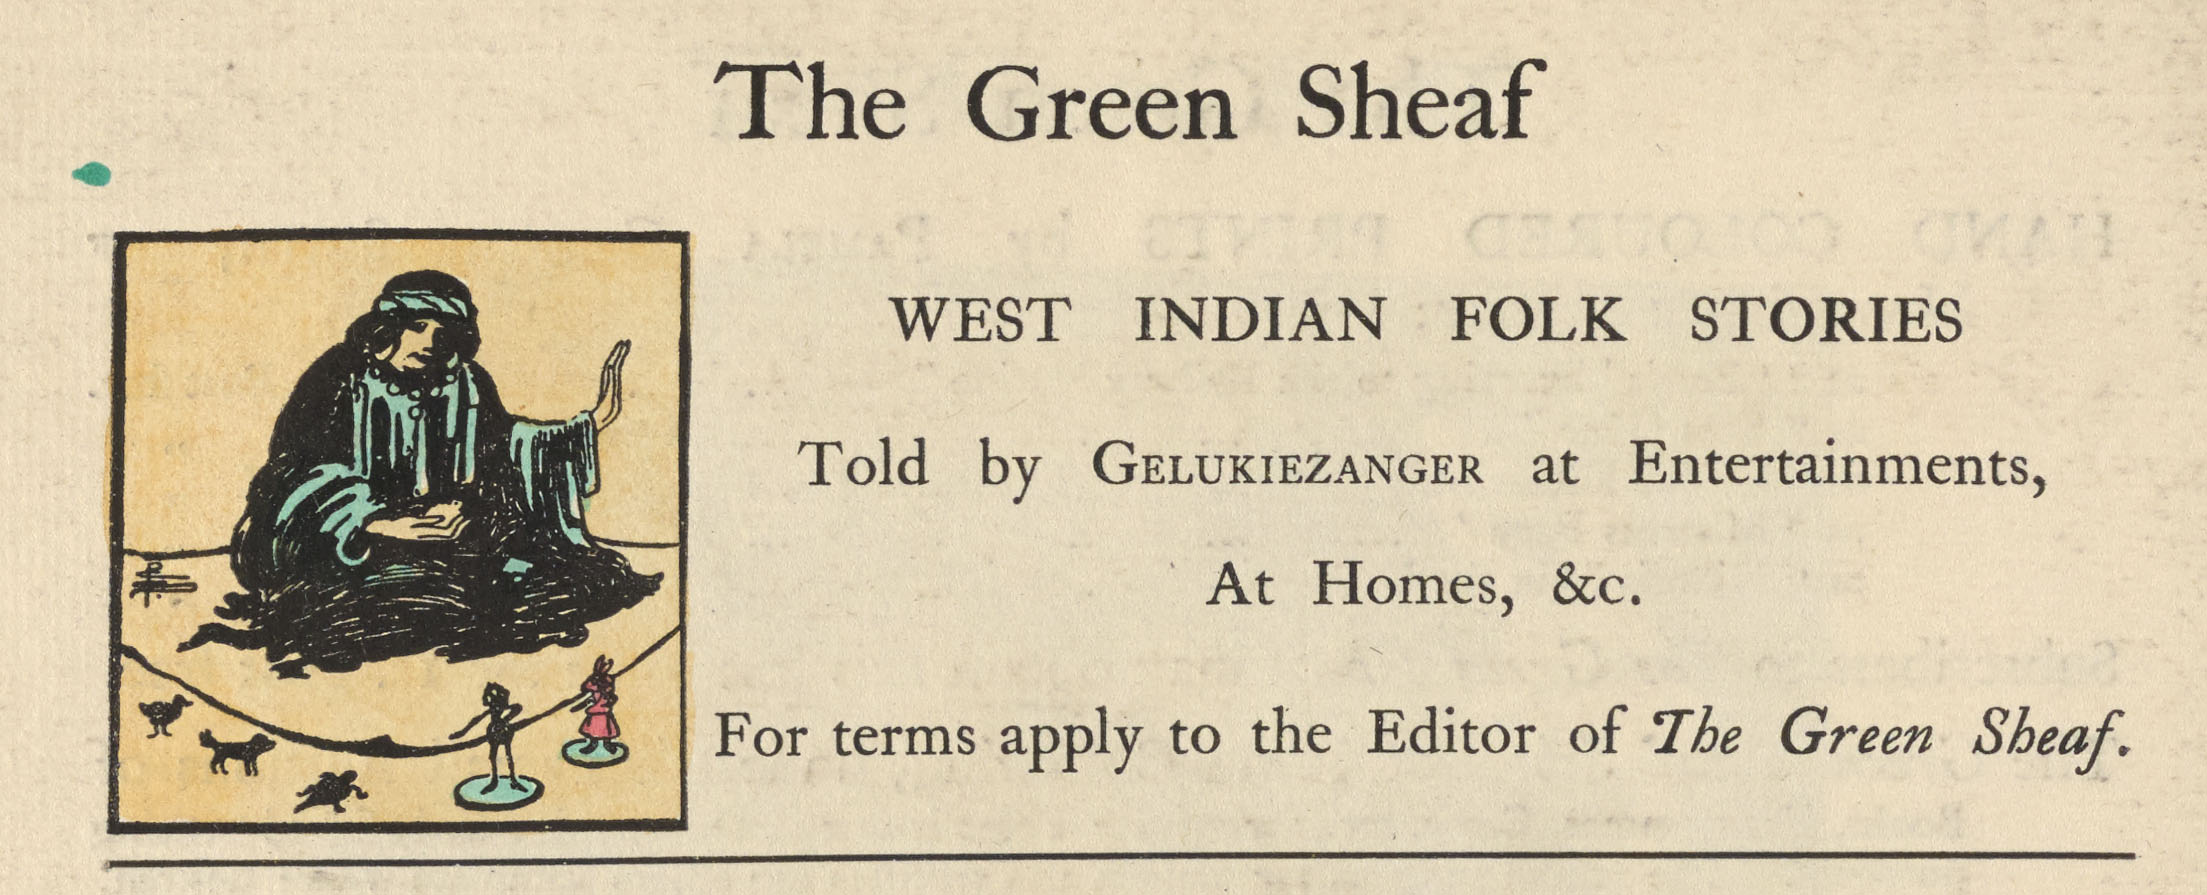 Advertisement for Gelukiezanger, The Green Sheaf, vol. 6